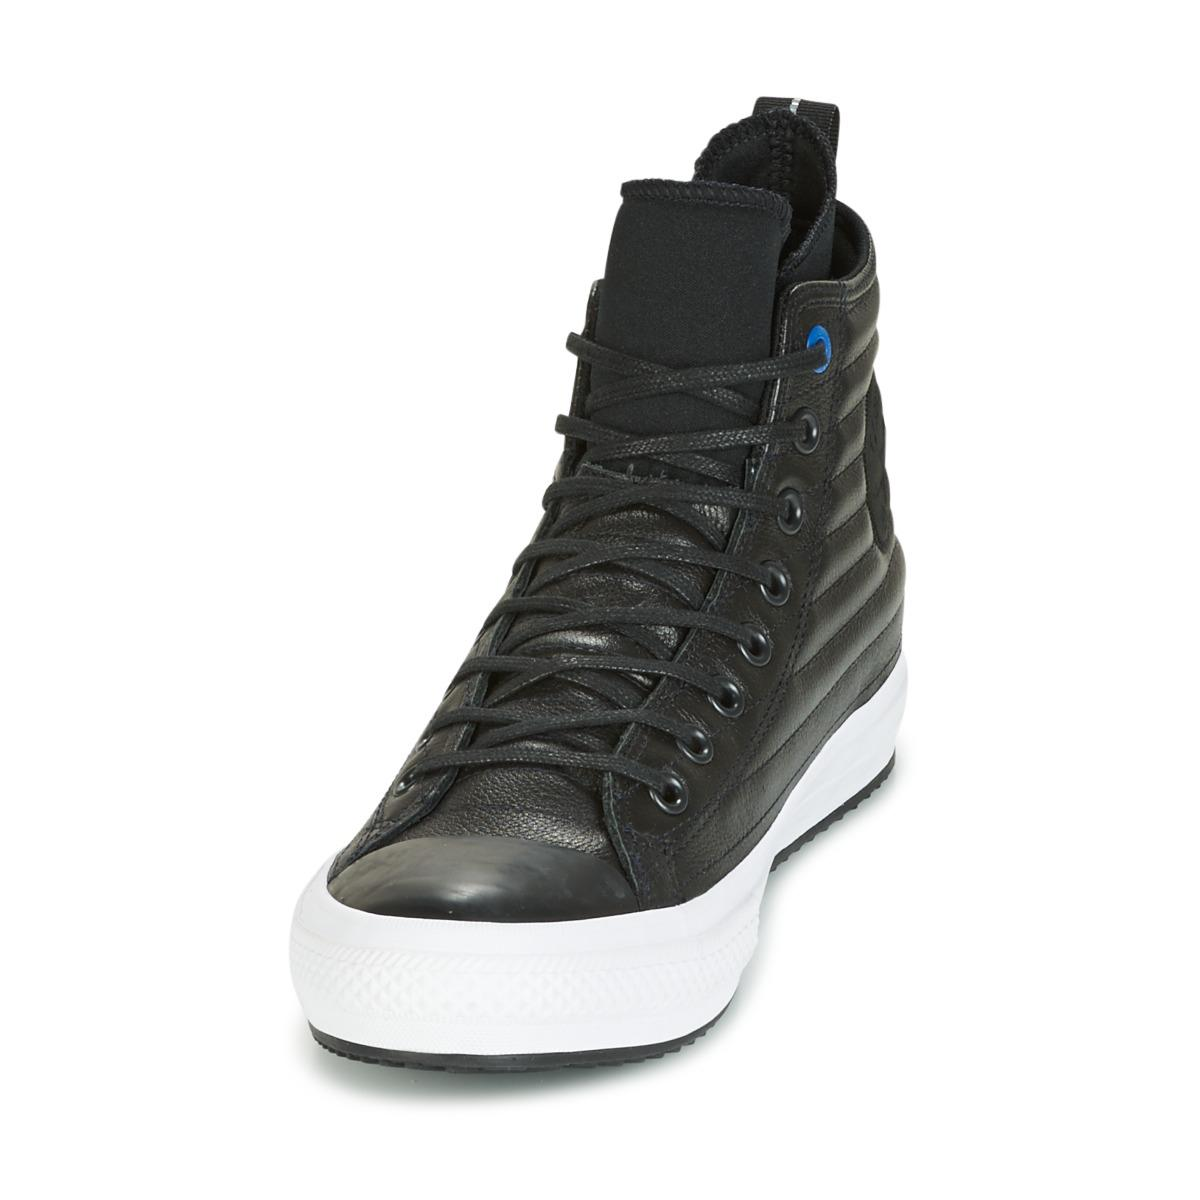 Converse - Chuck Taylor Wp Boot Quilted Leather Hi Black blue Jay white  Shoes. View fullscreen b2243124a